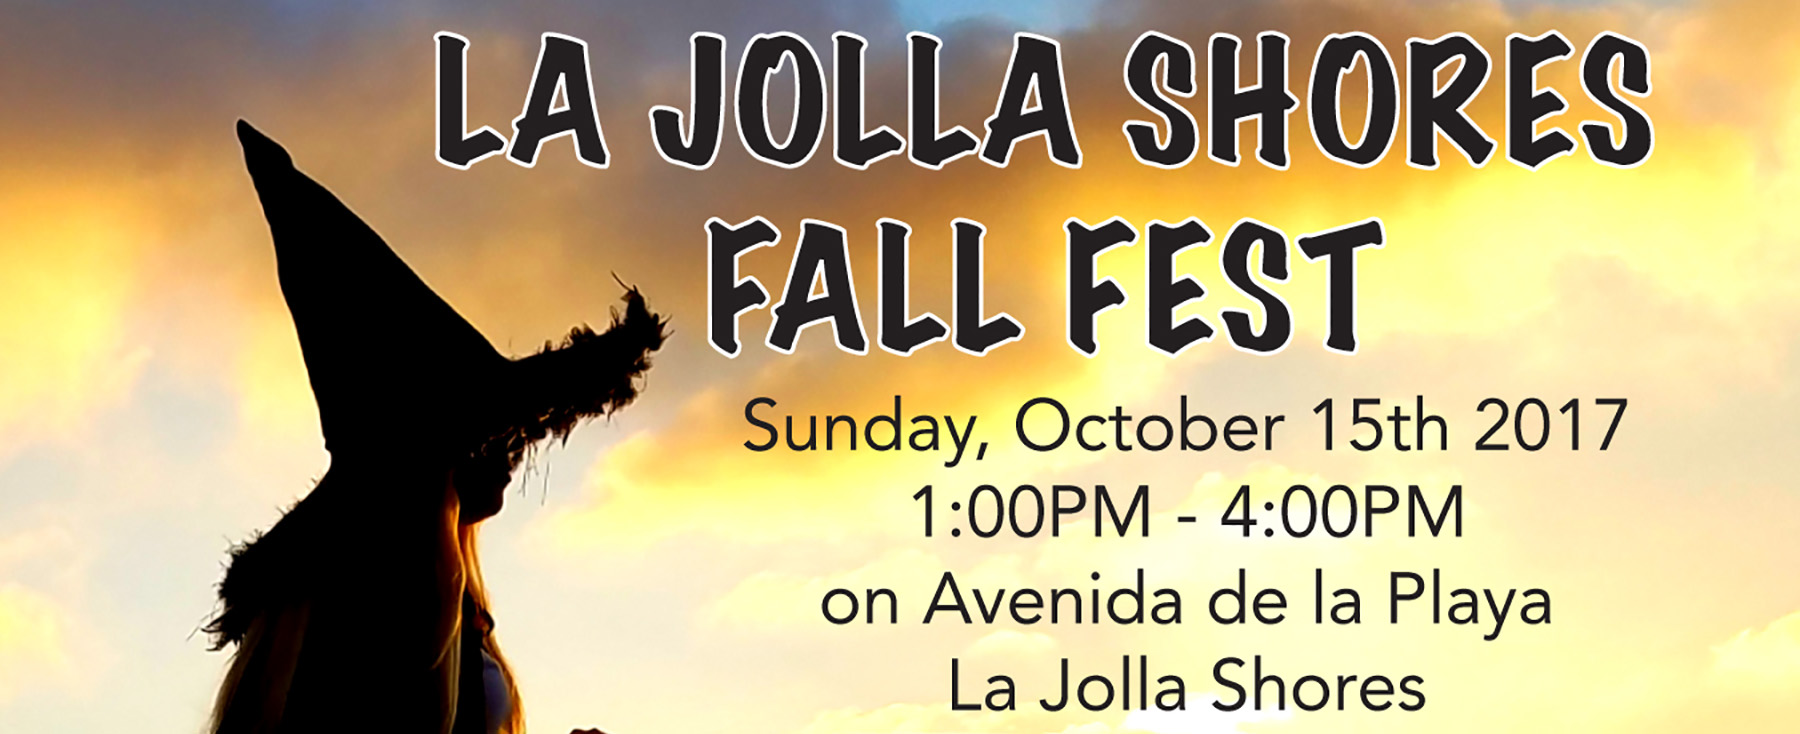 La Jolla Shores Fall Fest - Top Things to DO